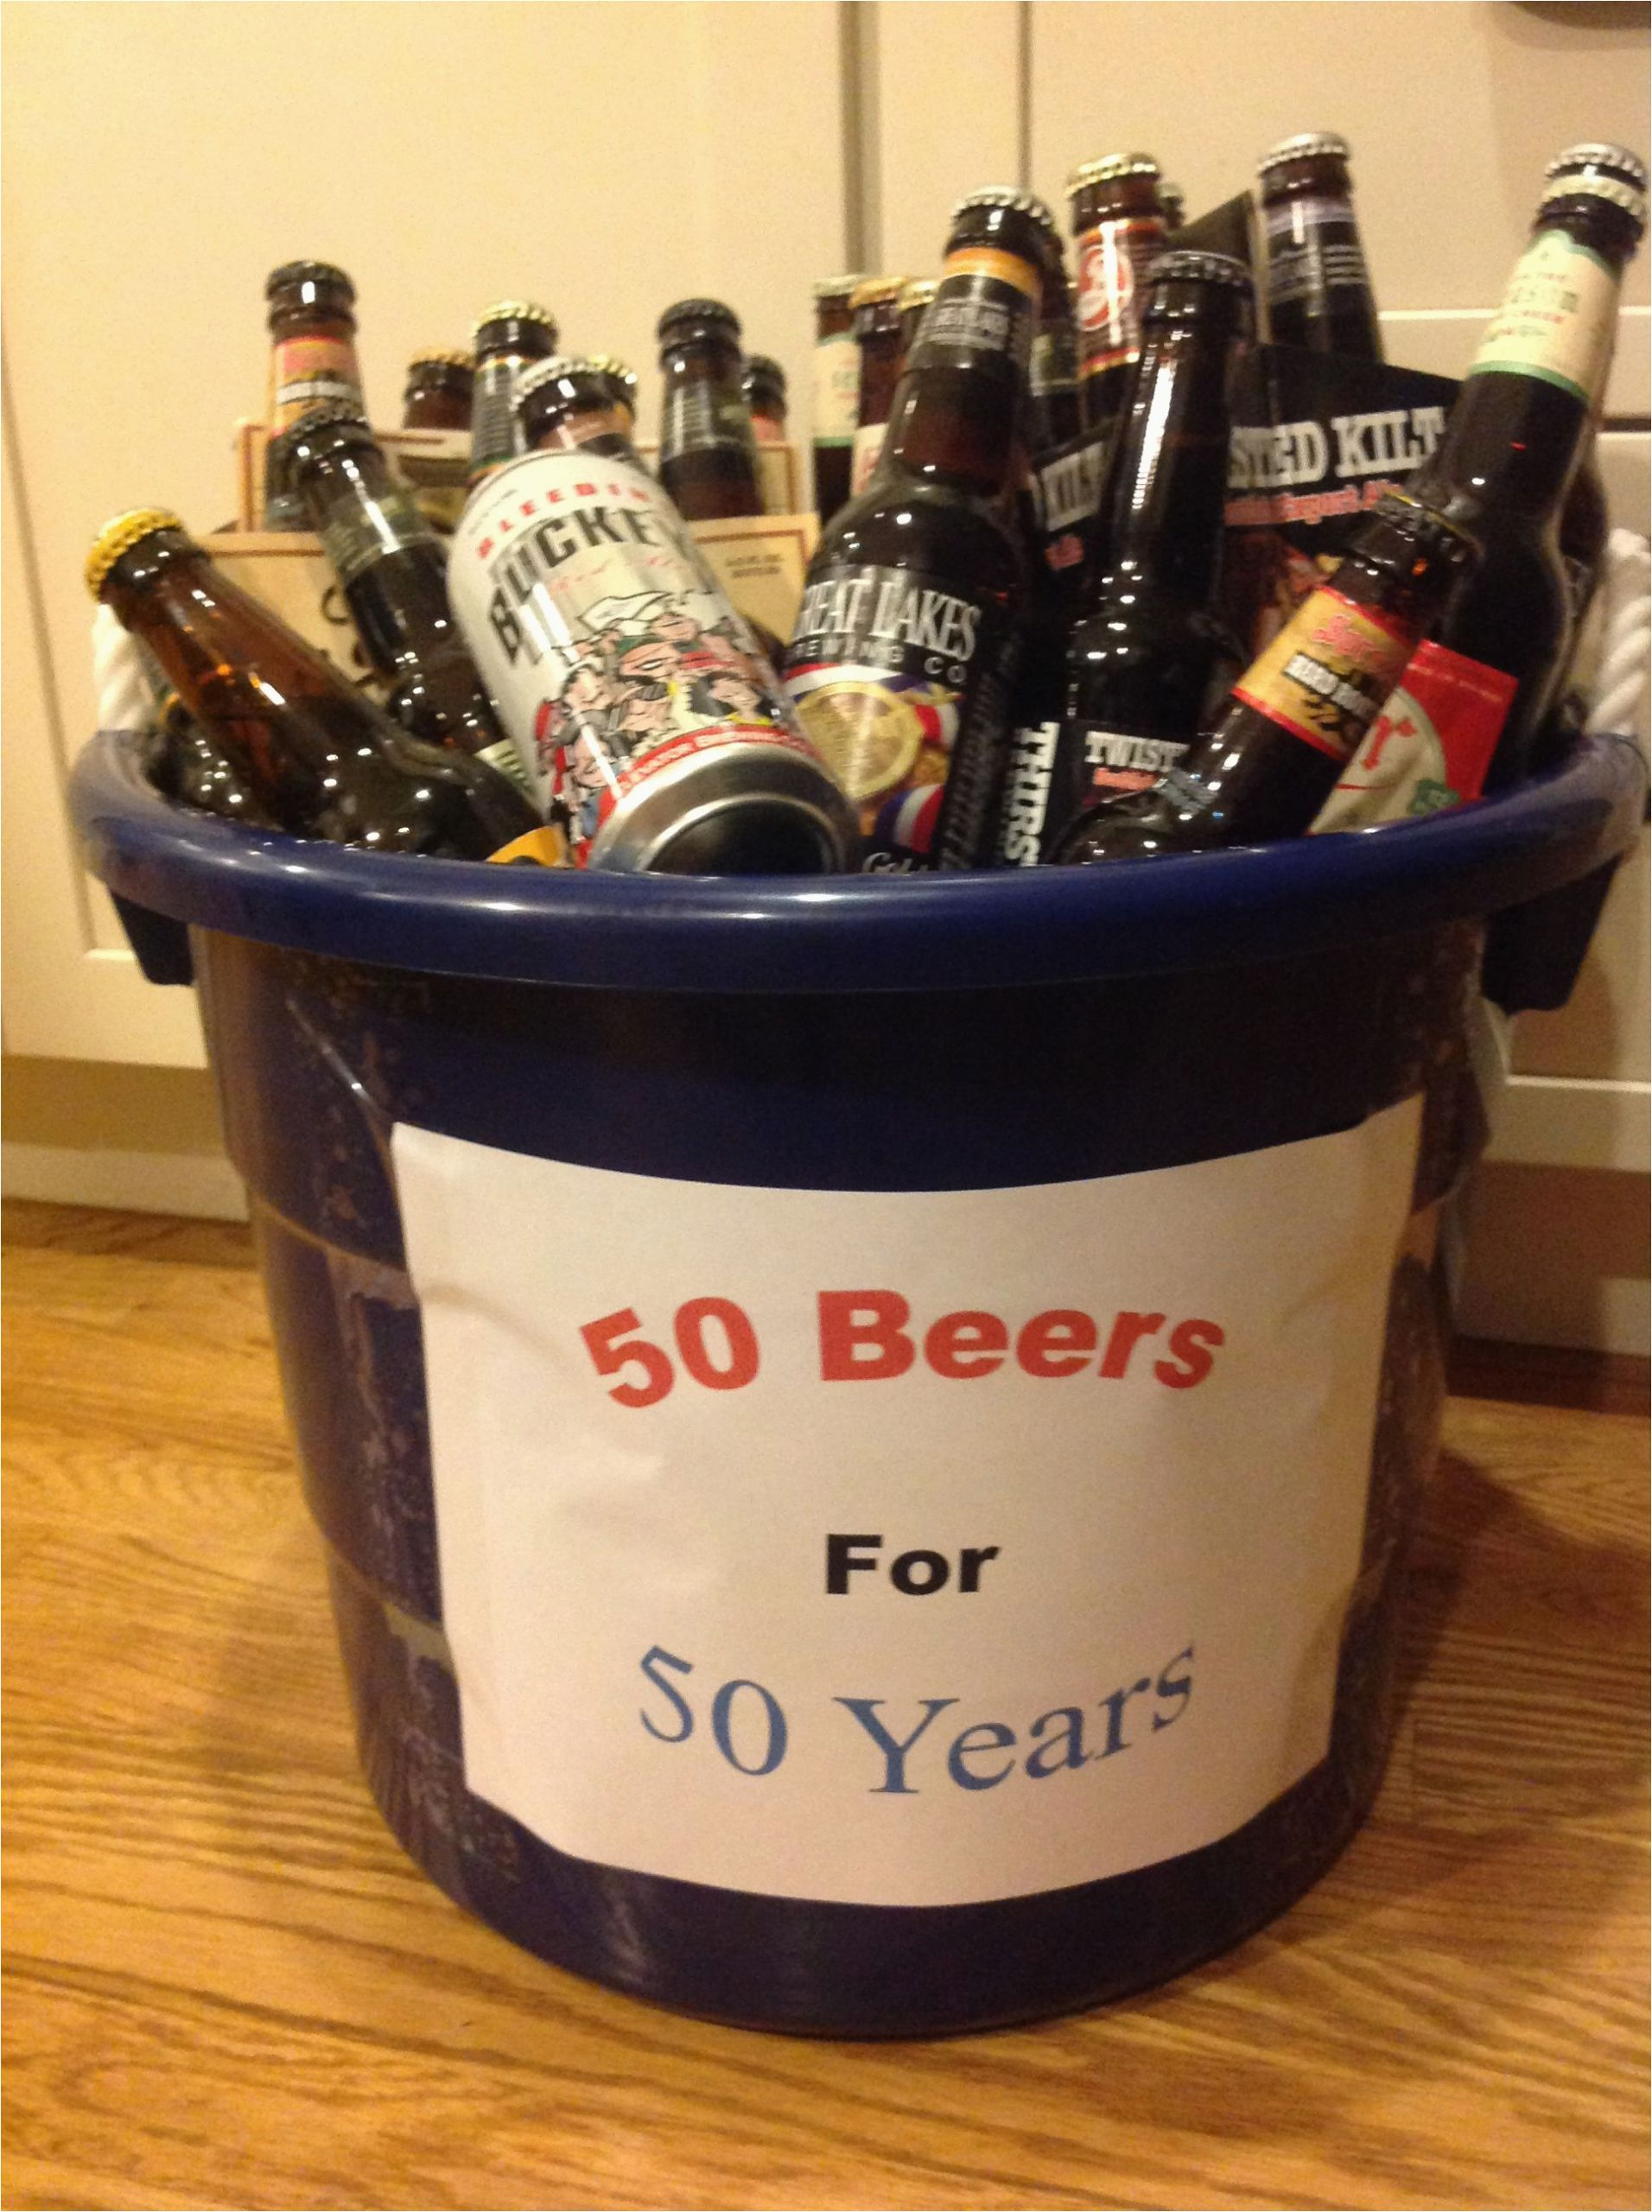 50th Birthday Gifts for Him 50th Birthday Gift for Your Guy Gifts 50th Birthday